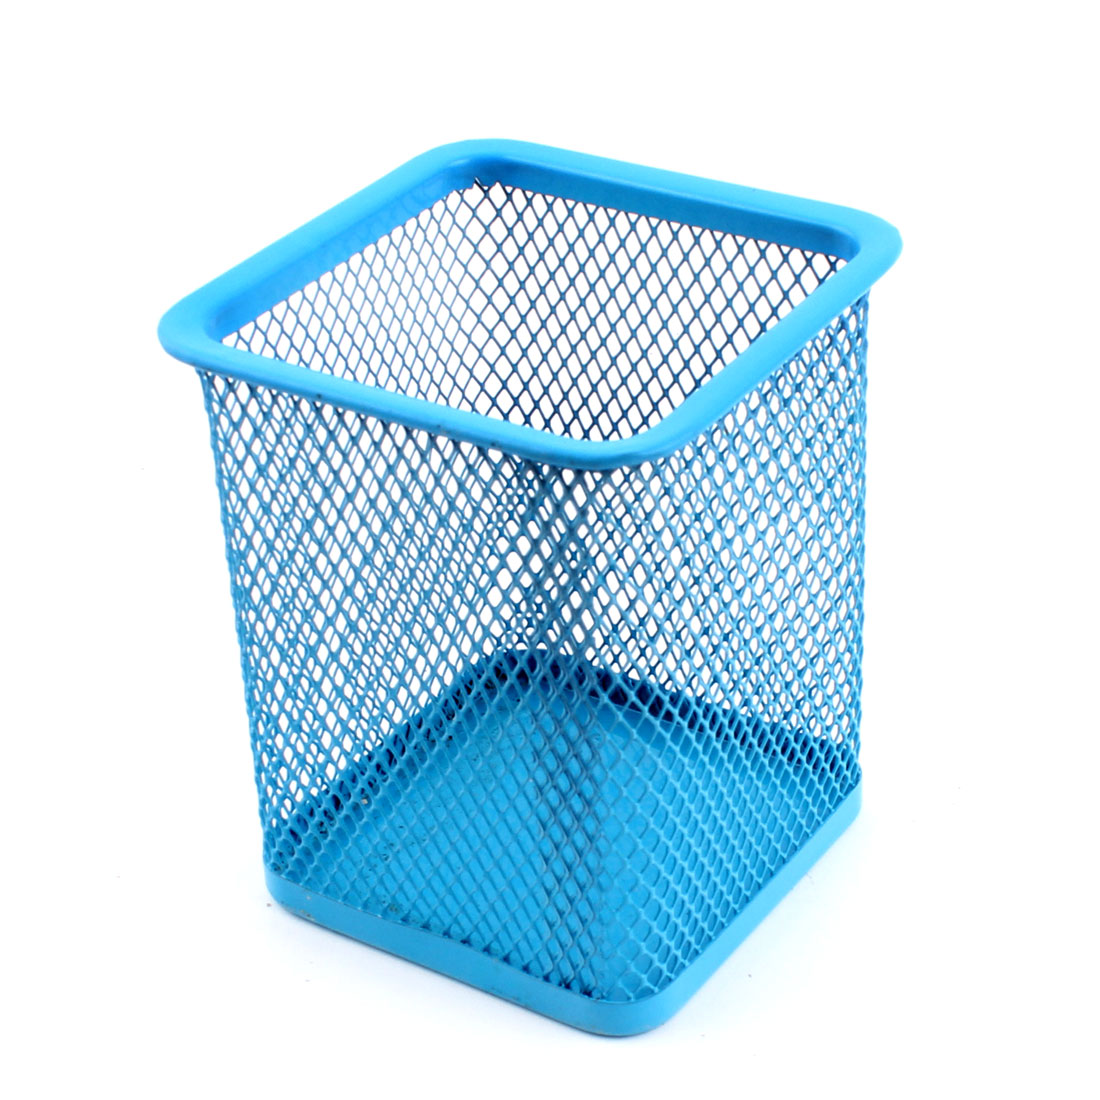 Metal Mesh Square Office Desk Pen Pencil Storage Holder Container Organizer Blue